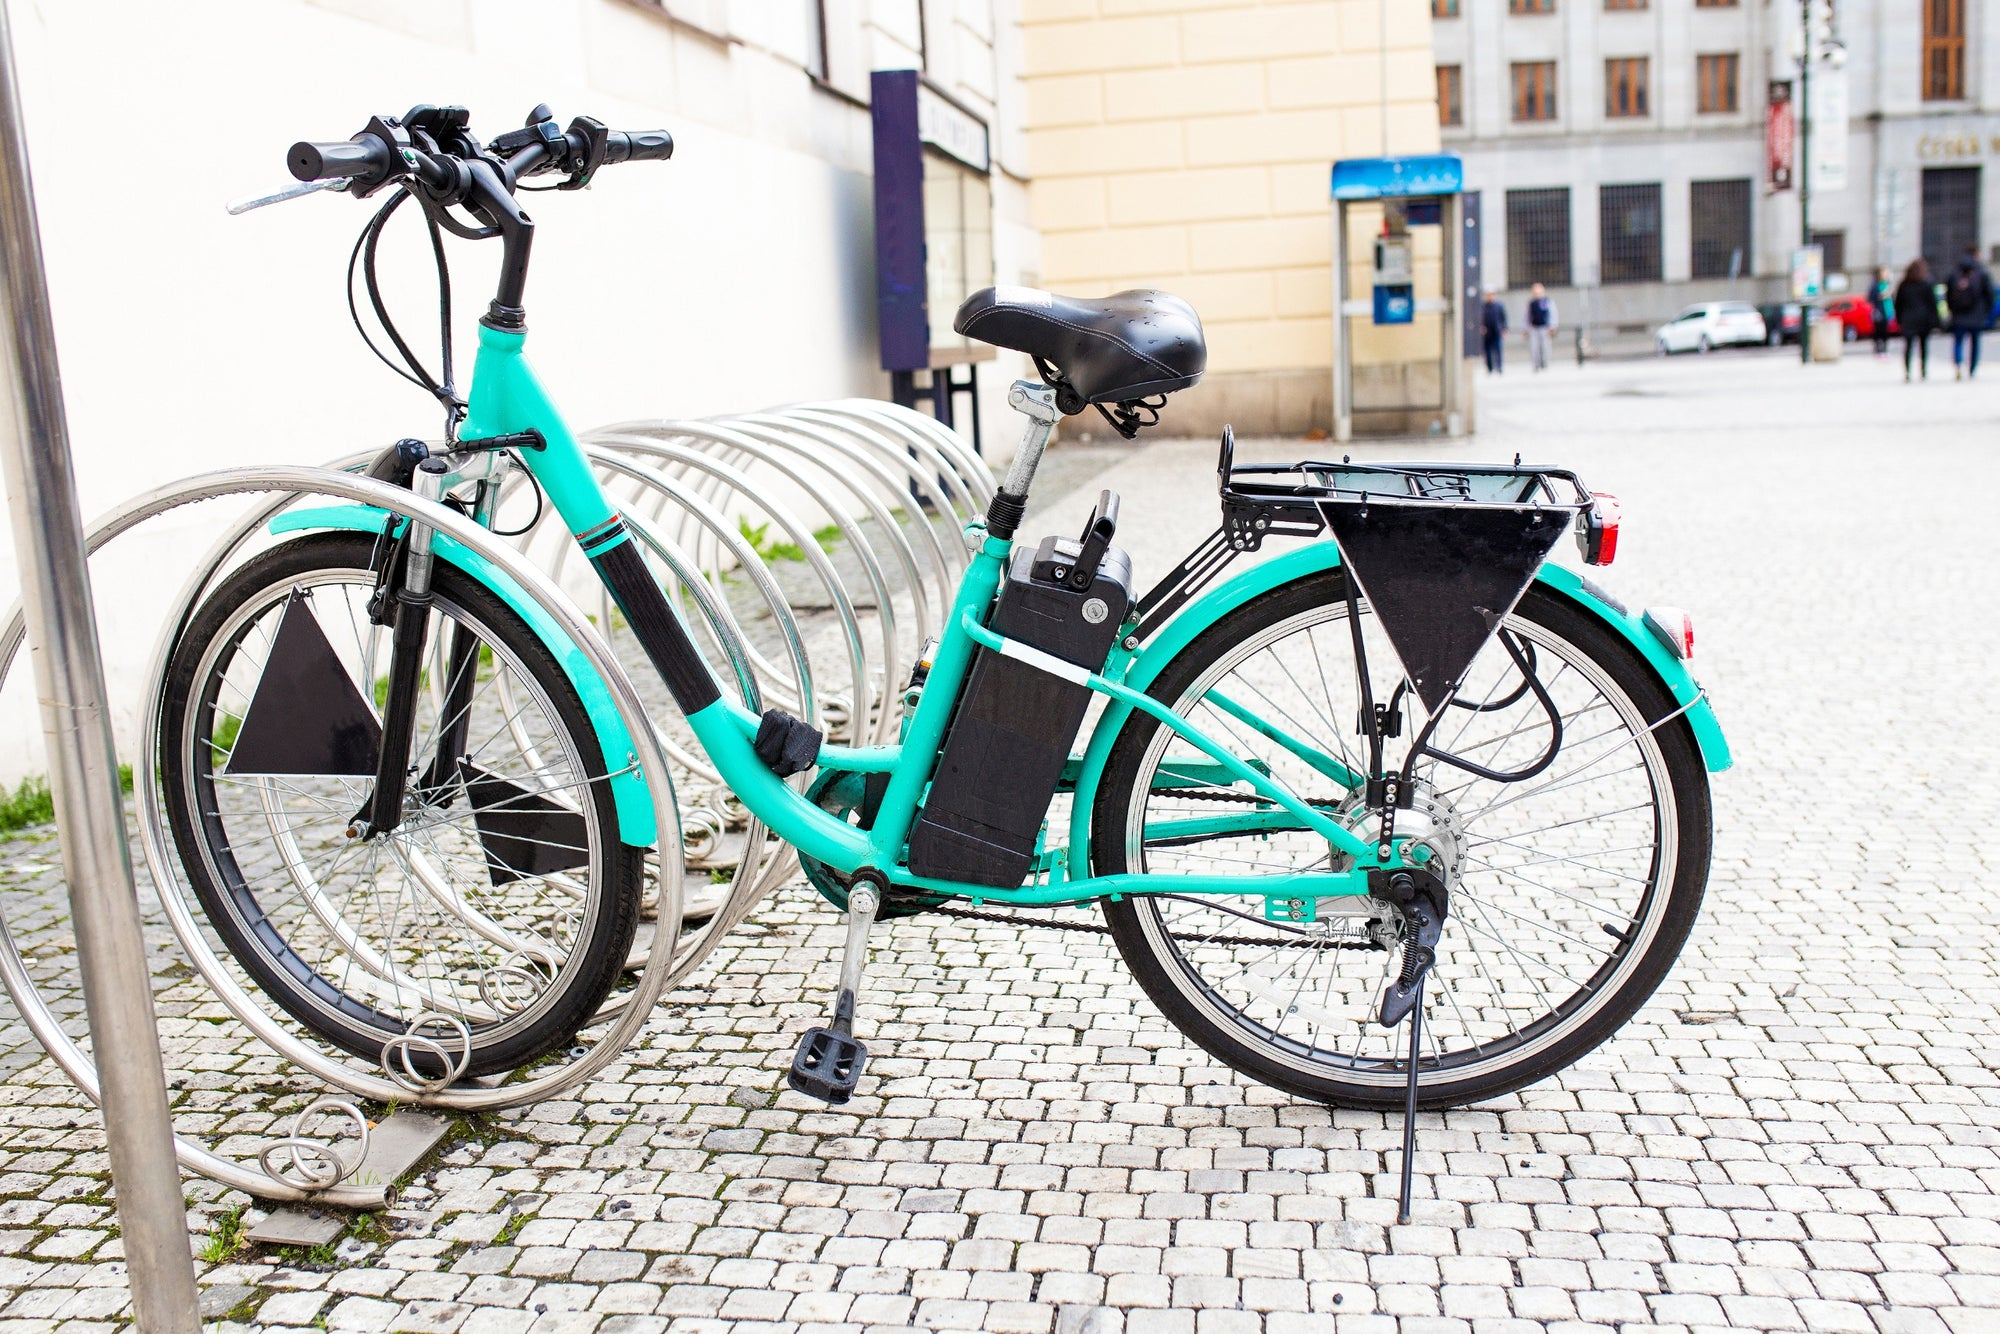 How to Protect Your Electric Bike in the Cities